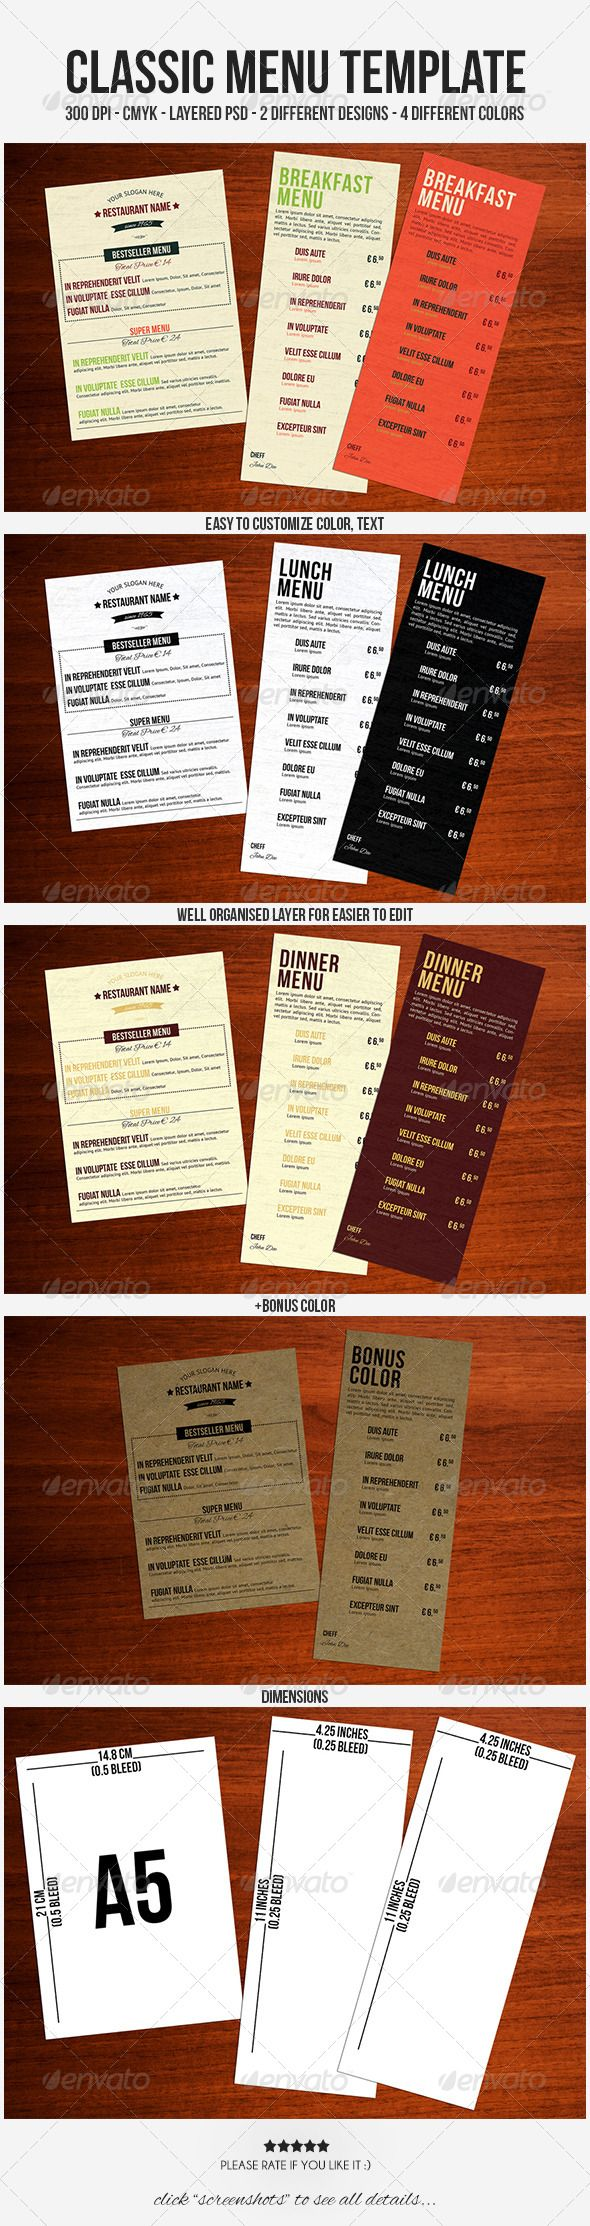 Classic Menu Template #GraphicRiver FEATURES 9 PSD files; Beakfast 1, Beakfast 2, Beakfast A5 Lunch 1, Lunch 2, Lunch A5 Dinner 1, Dinner 2, Dinner A5 +Bonus Color 1, +Bonus Color A5 1 Info.txt 2 different designs 4 different colors Easy to customize Editable fonts/text/colors Well organized layer Work organized in folders Print ready DIMENSIONS A5 Designs